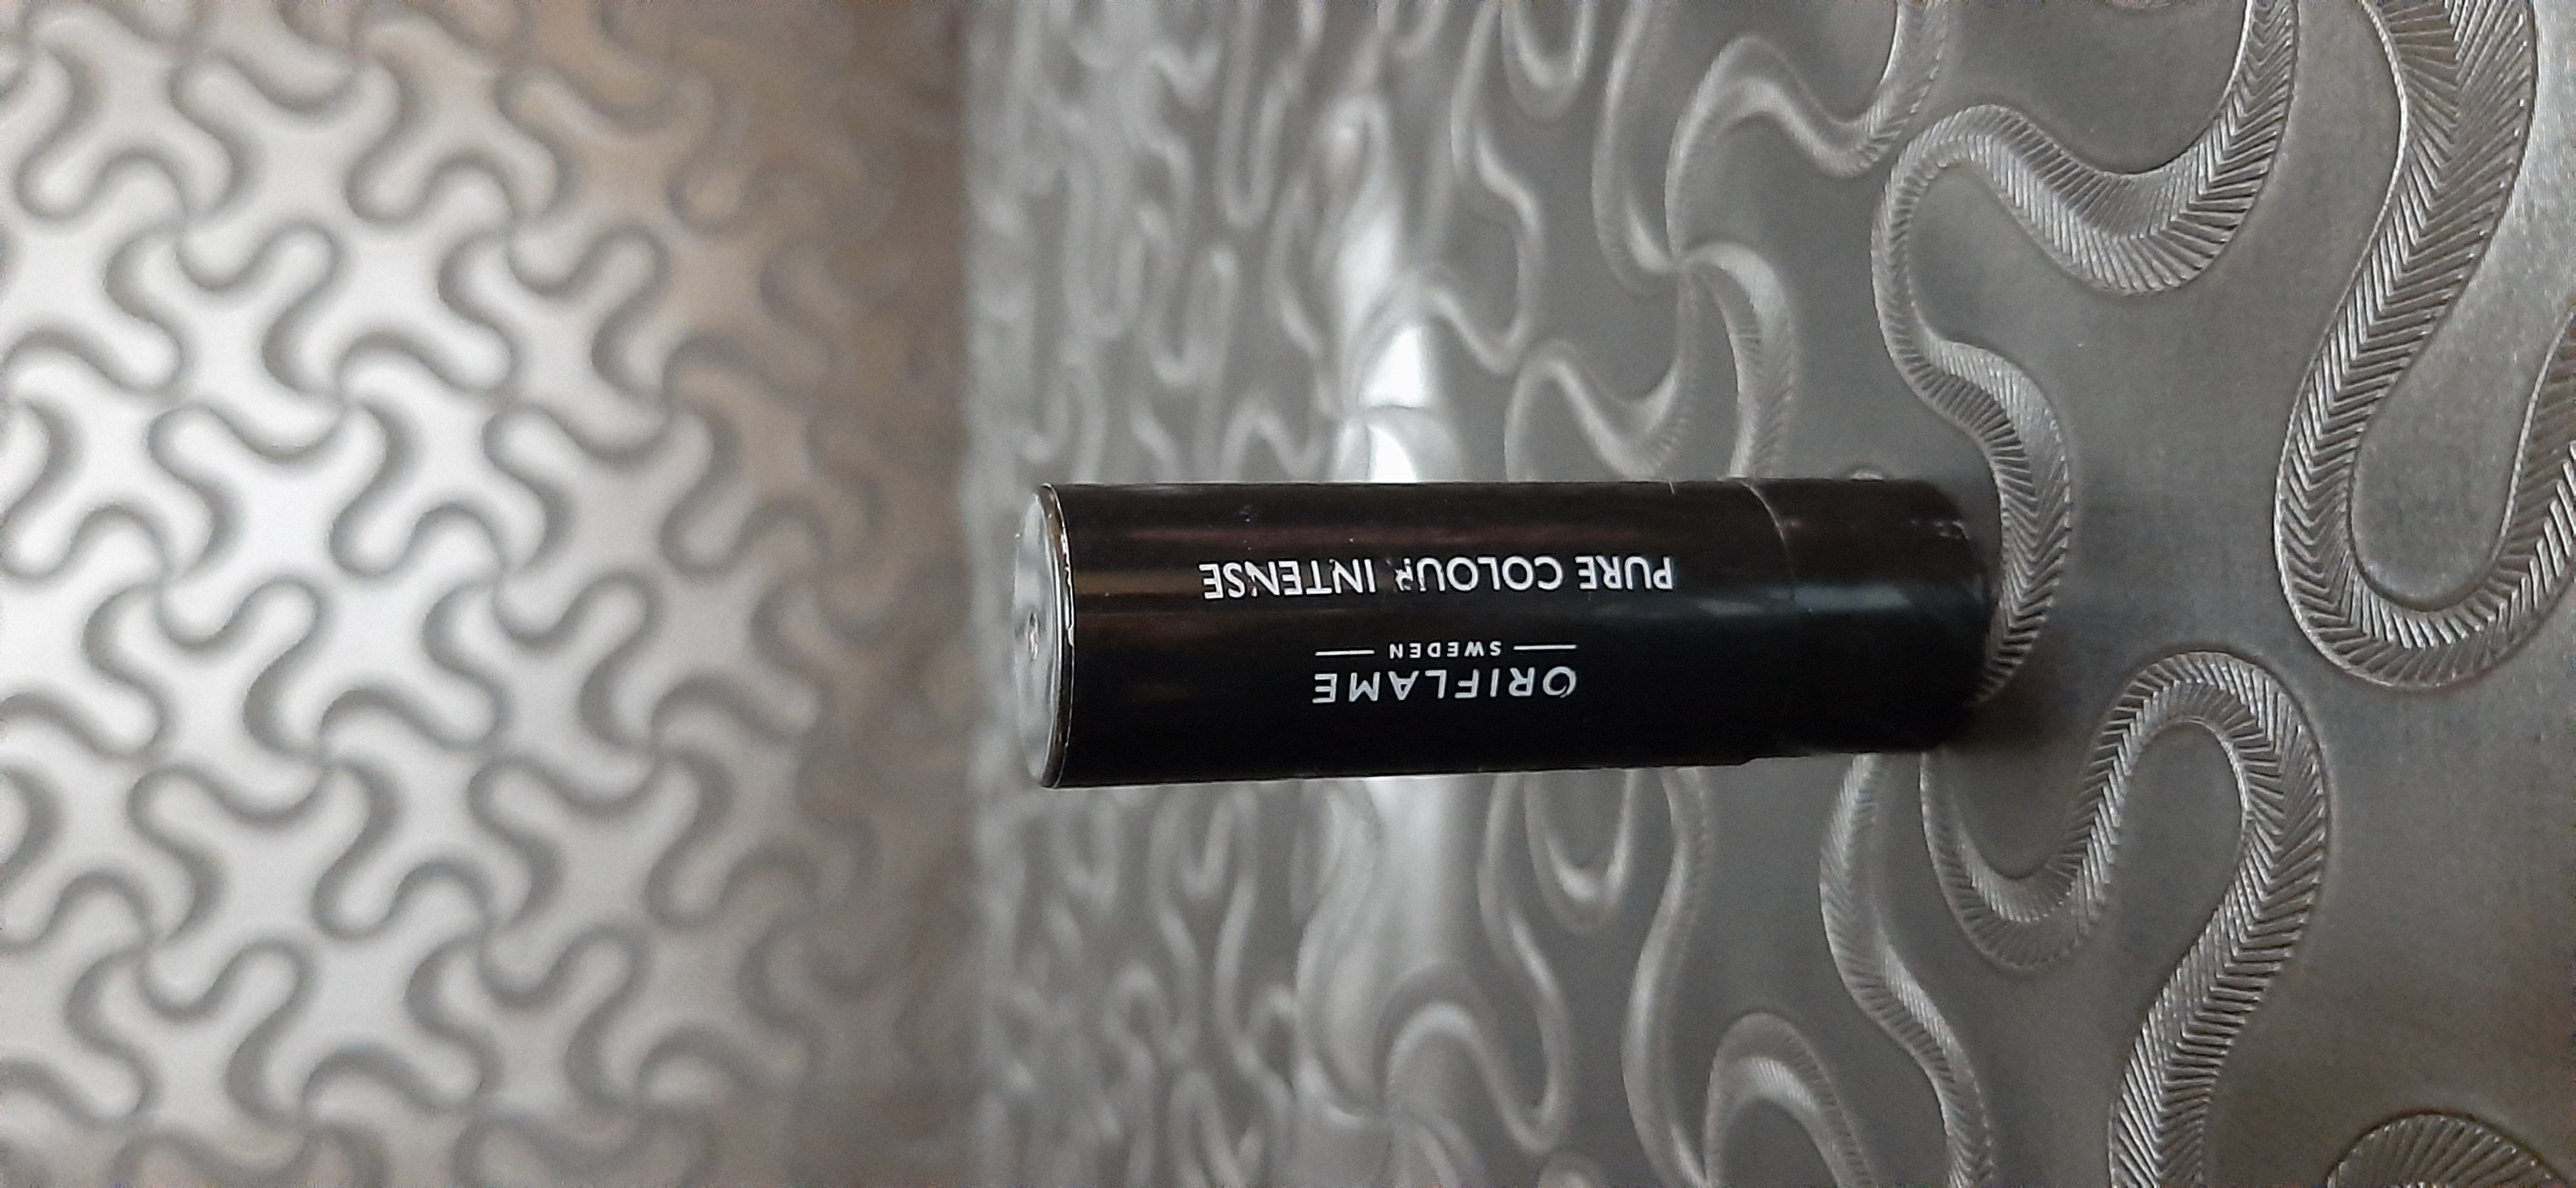 Oriflame Pure Colour Intense Lipstick-Average lipstick-By samira_haider-1